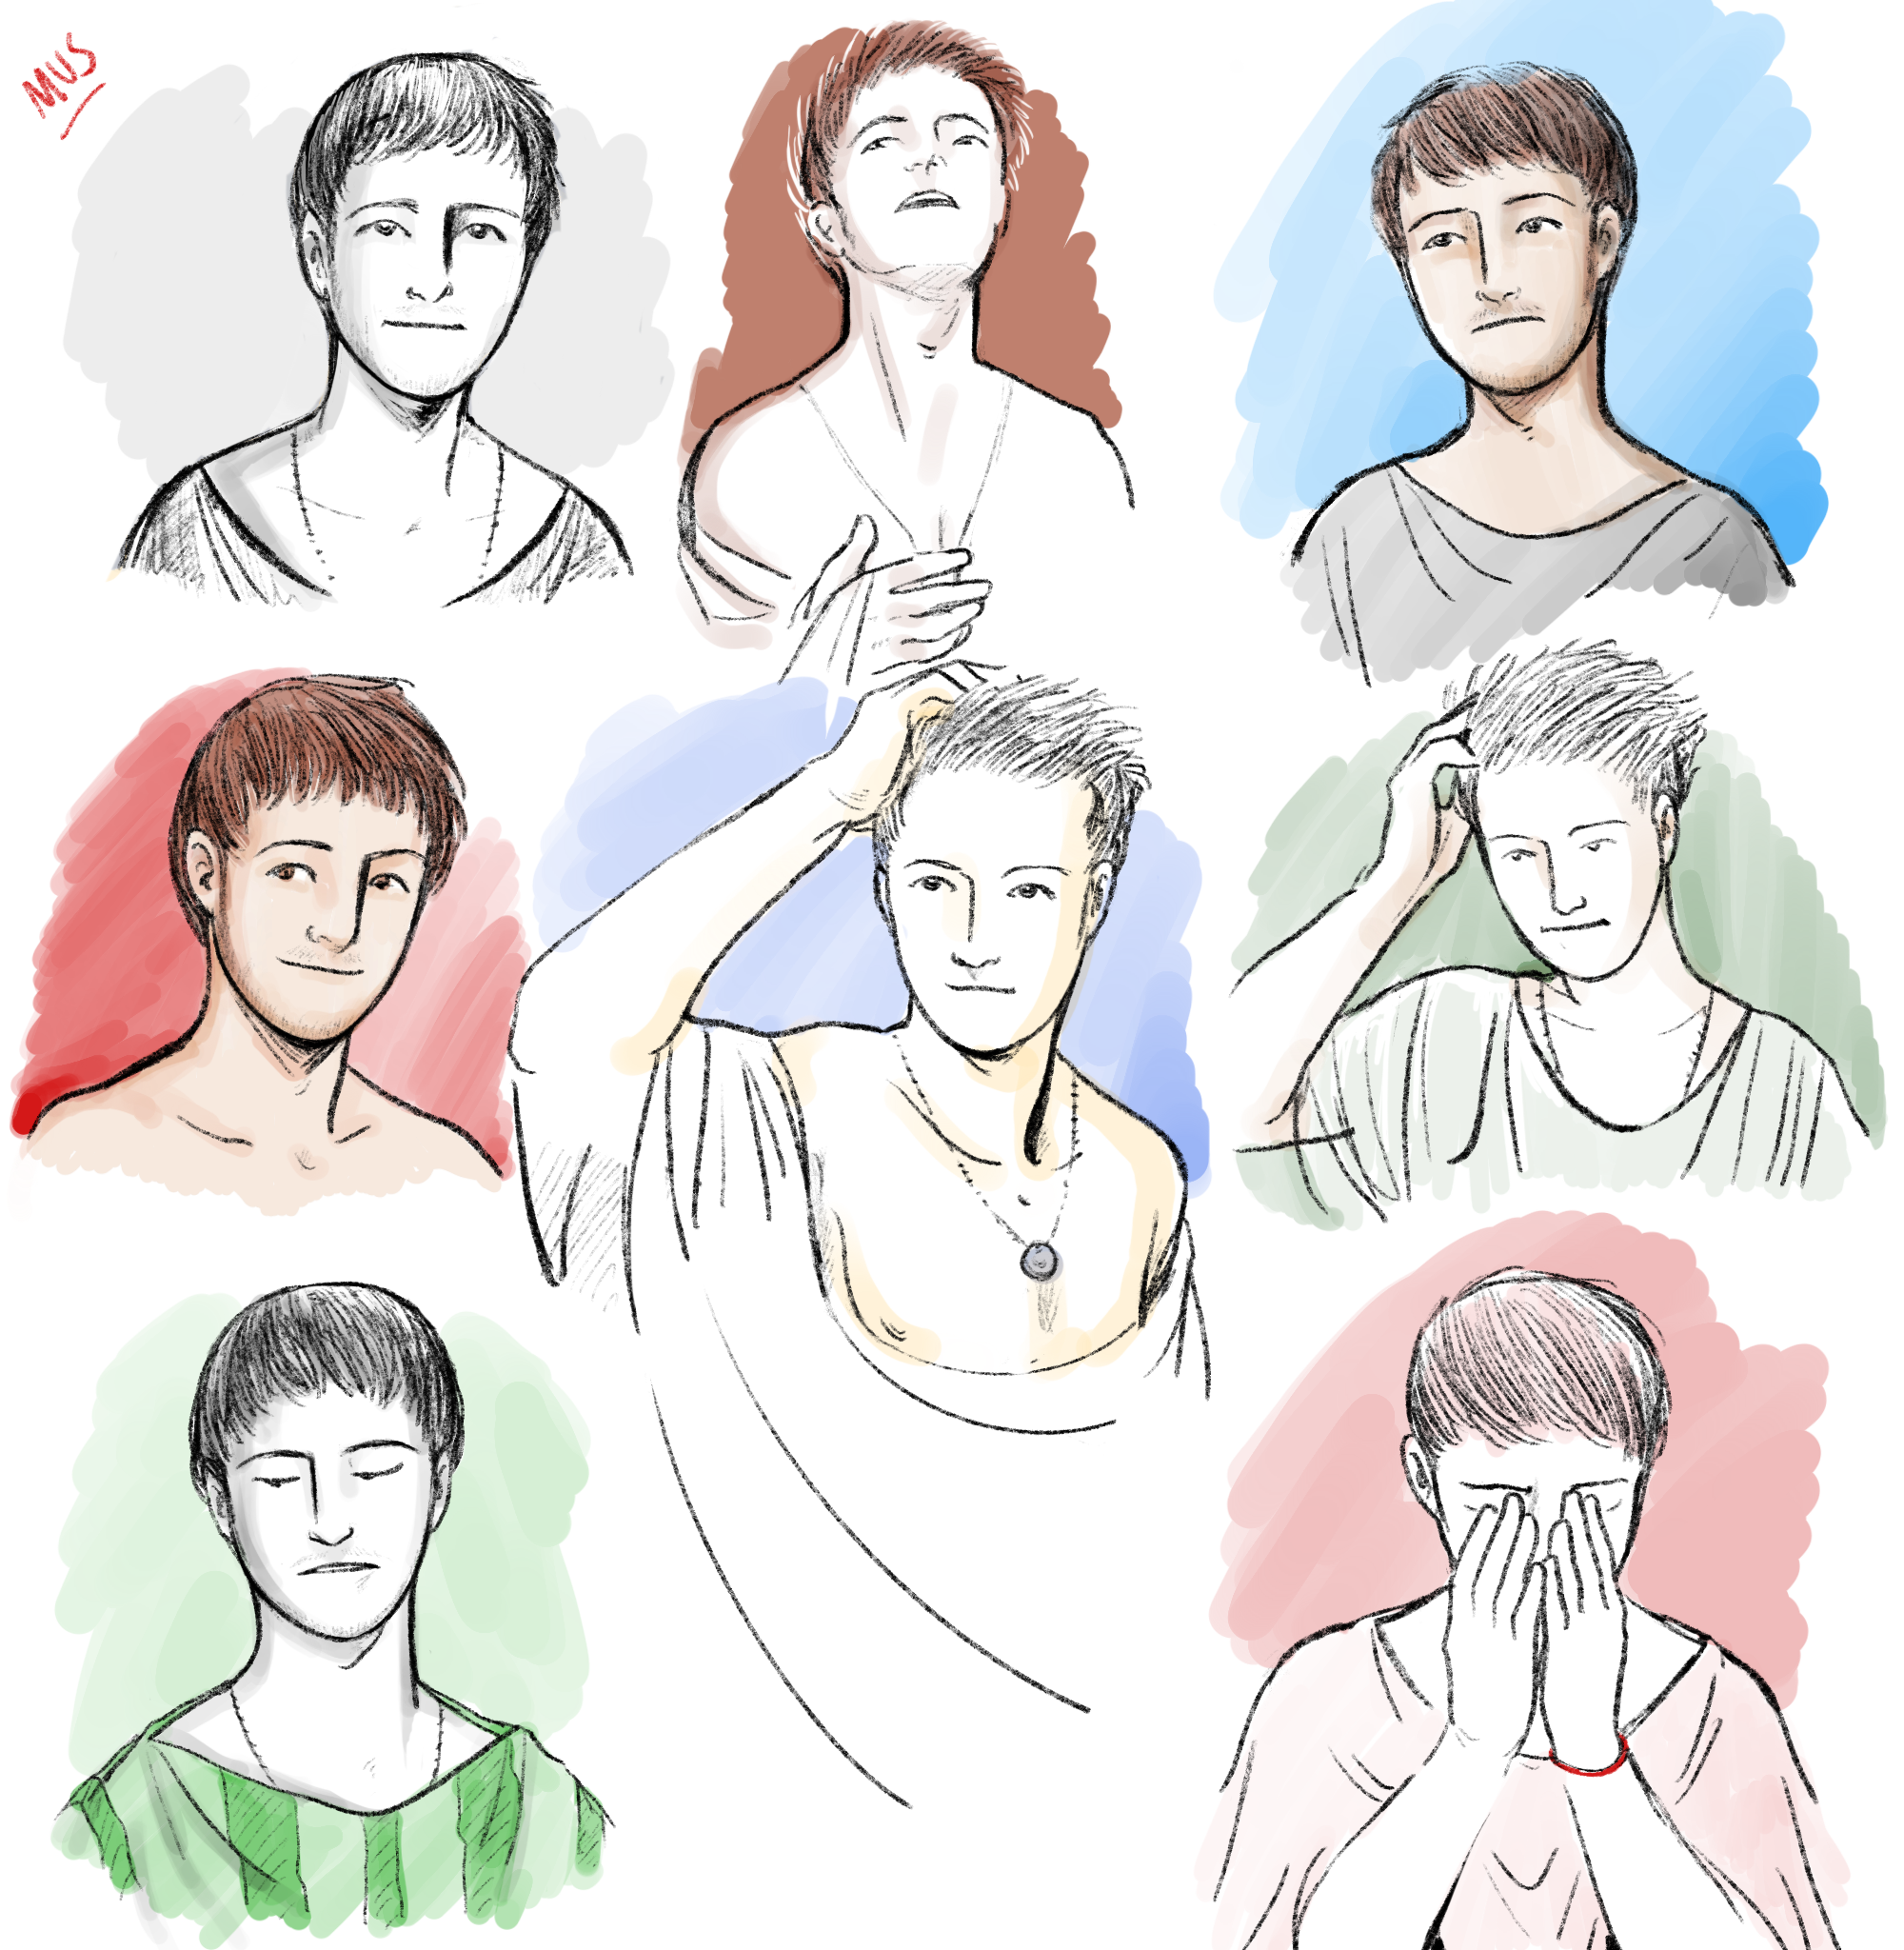 Head studies 2: Mus (younger and older versions)